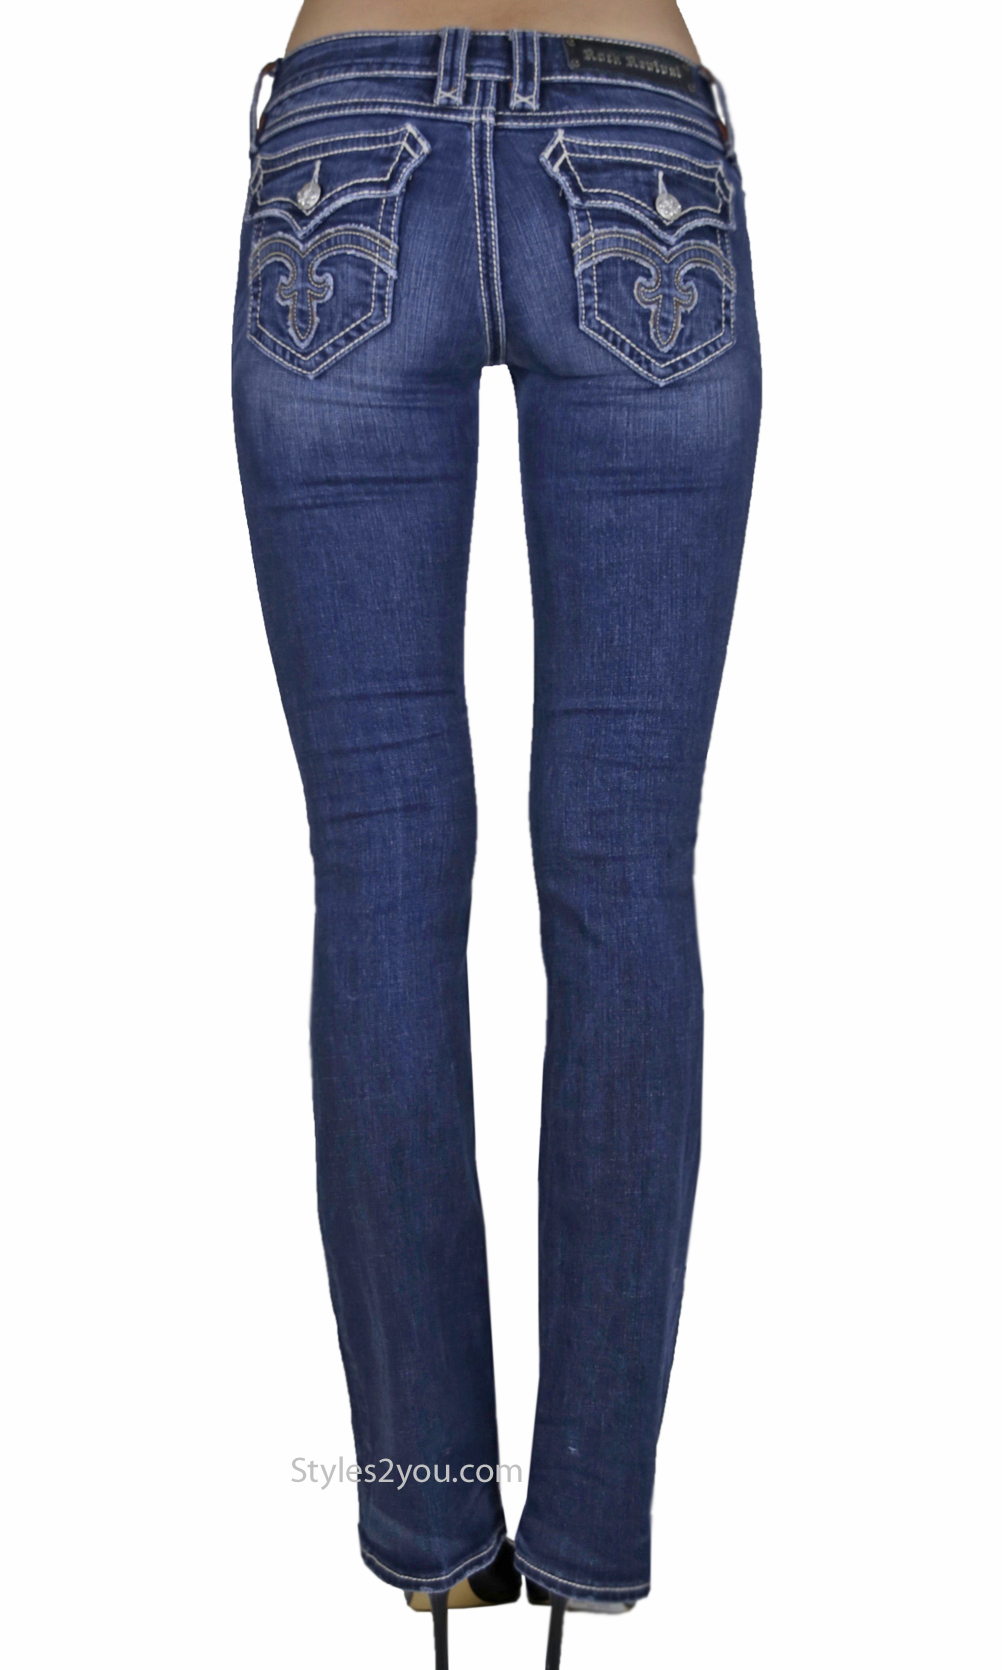 Ladies Bootcut Jeans debbie ladies bootcut jeans medium blue denim rock revival jean · « FDUPFEL